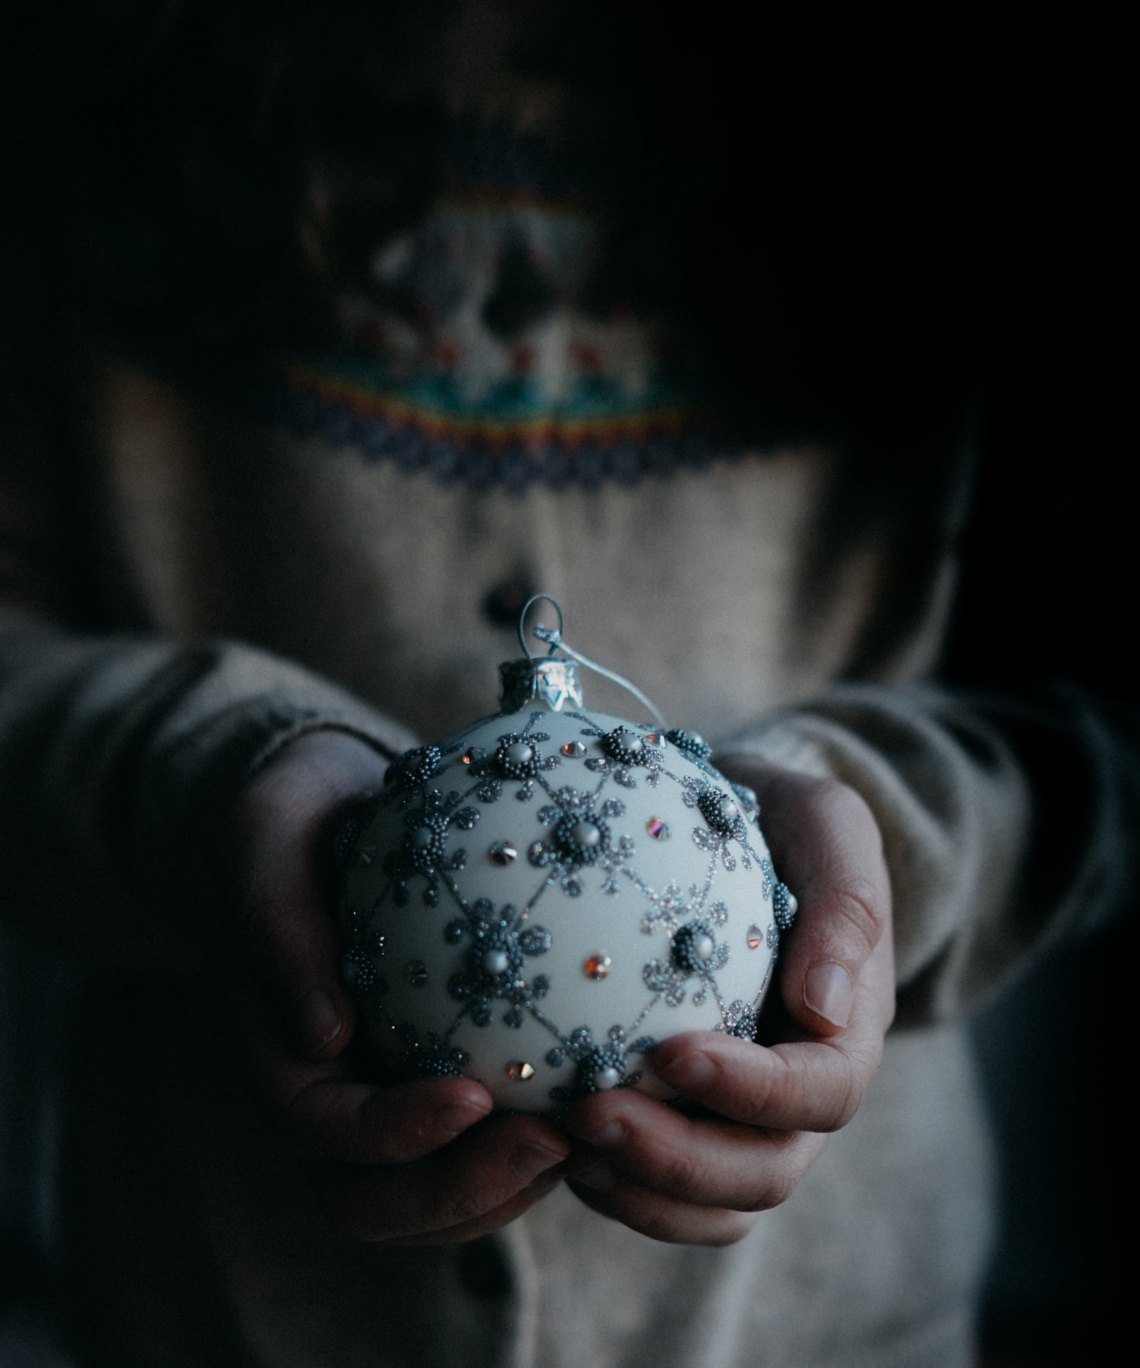 girl holding a dimly lit christmas ornament